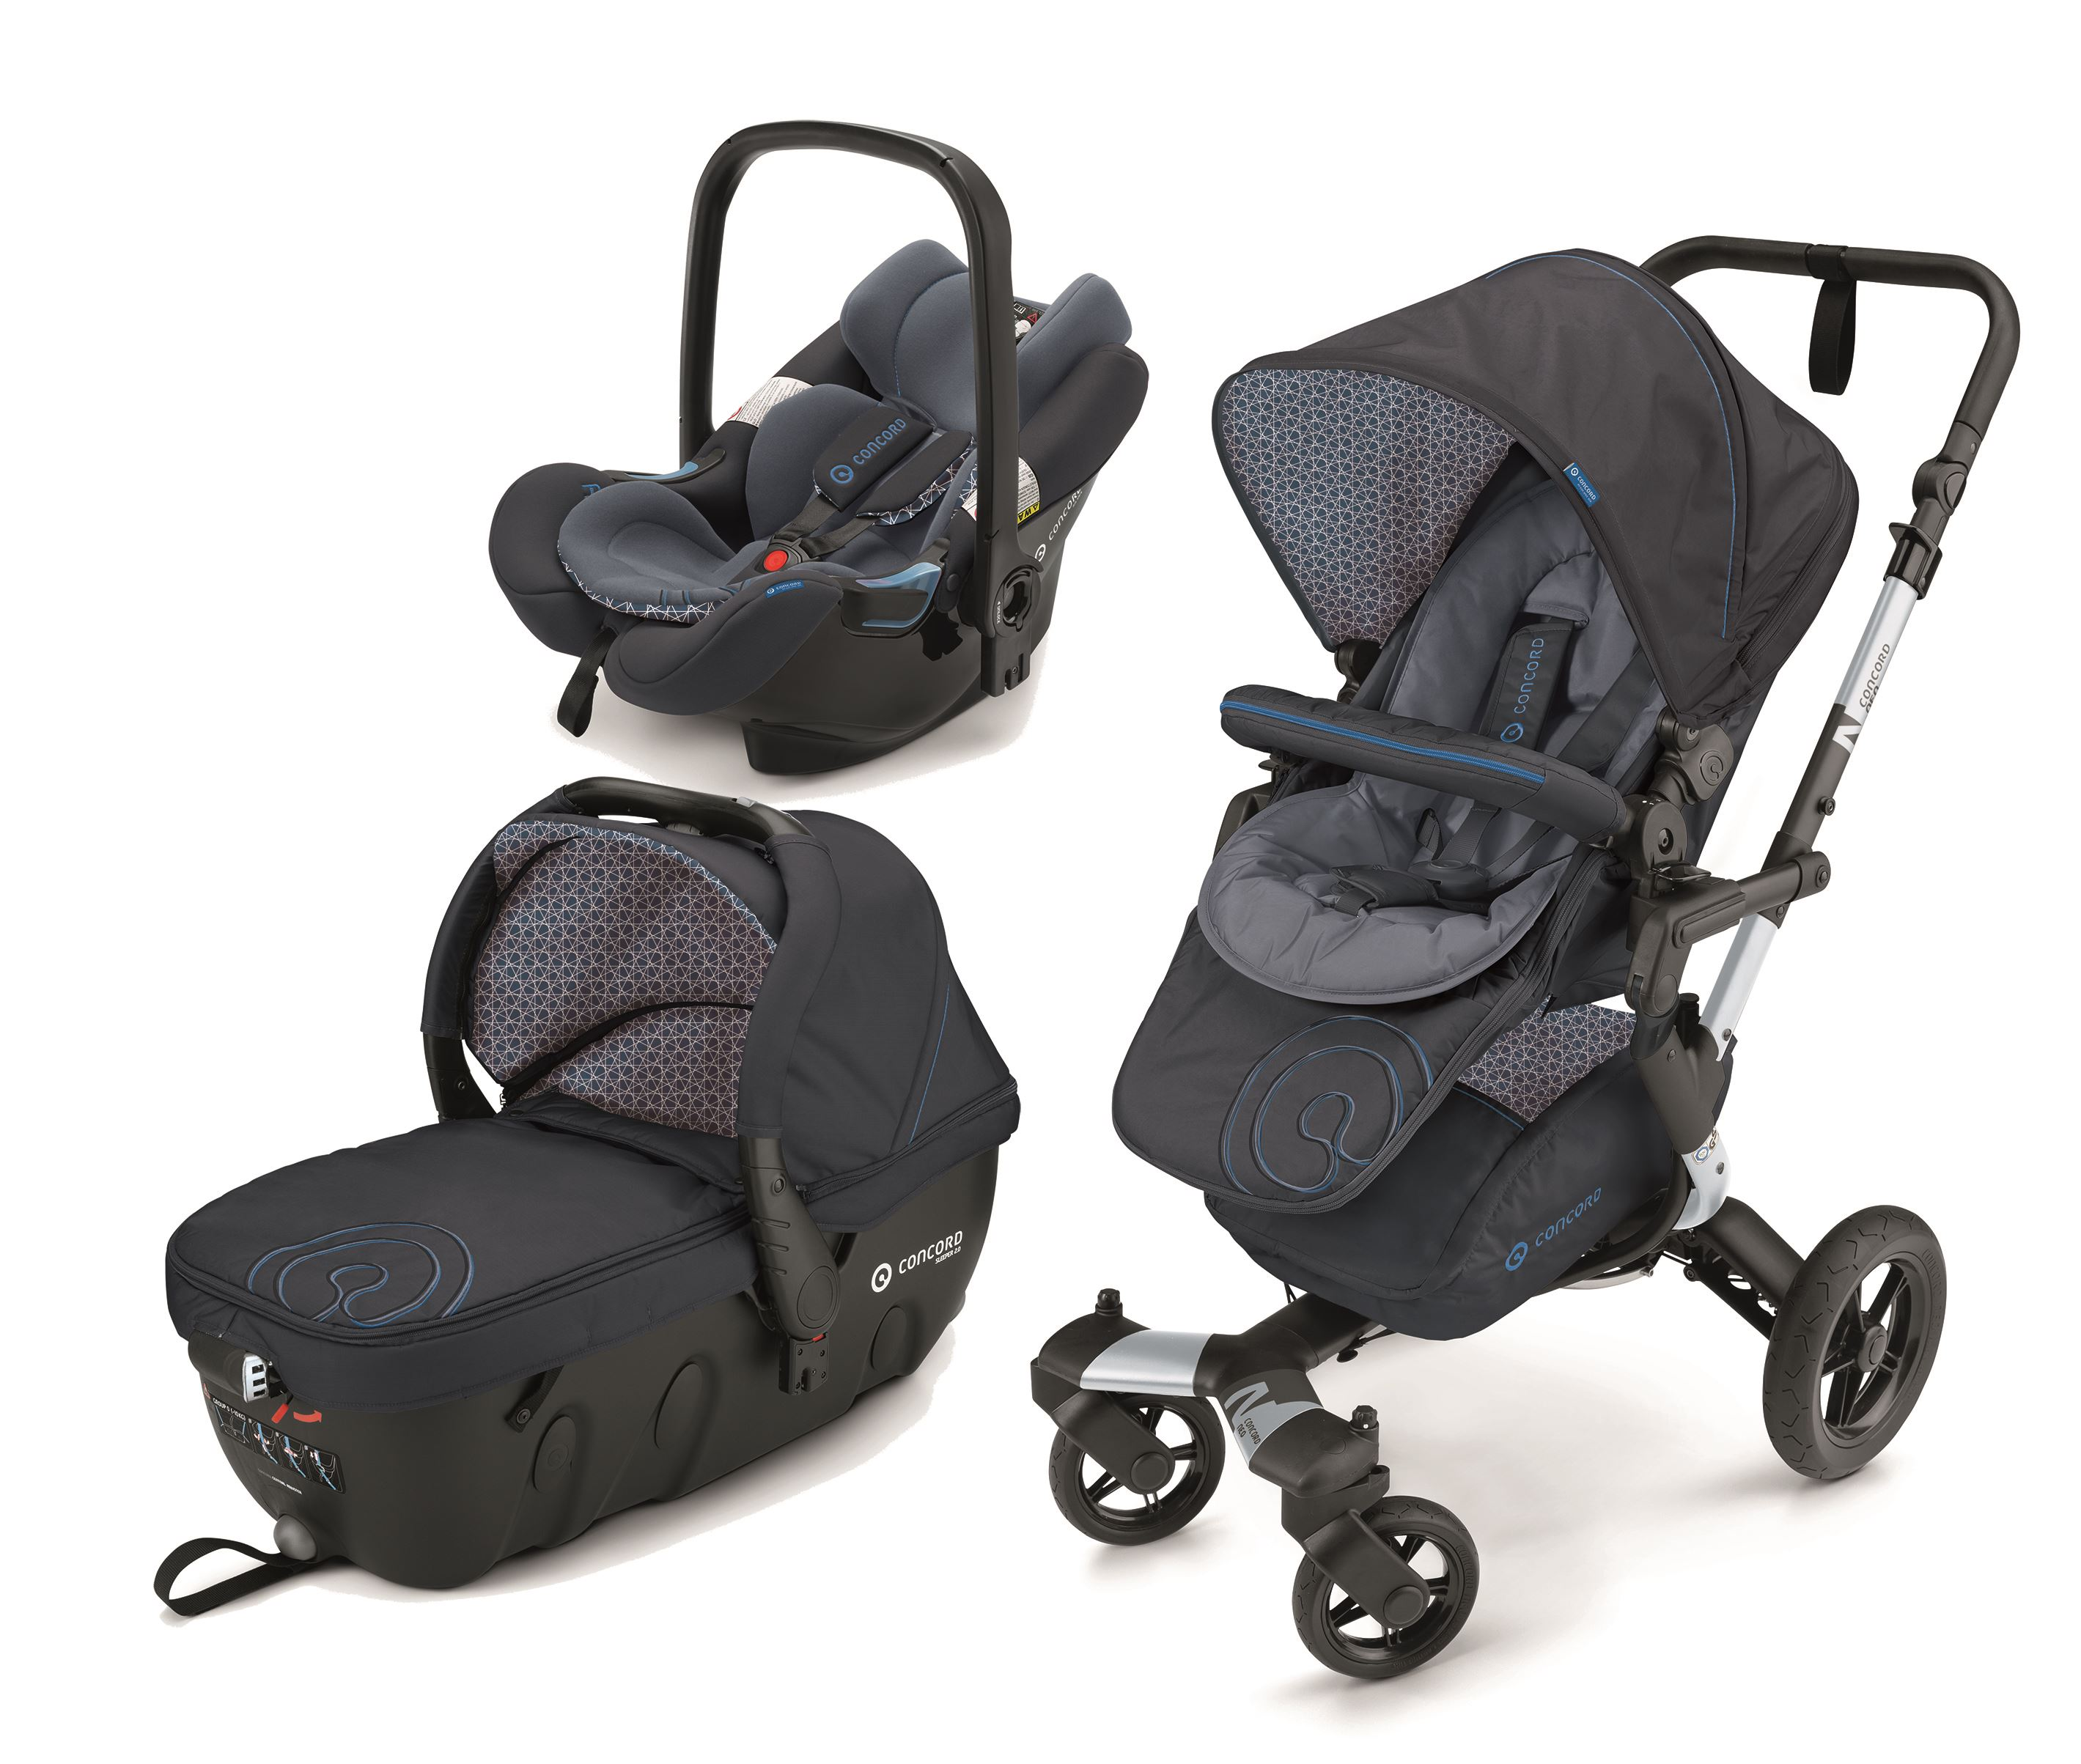 NEO TRAVEL-SET coche trio capazo homologado automovil con base Isofix